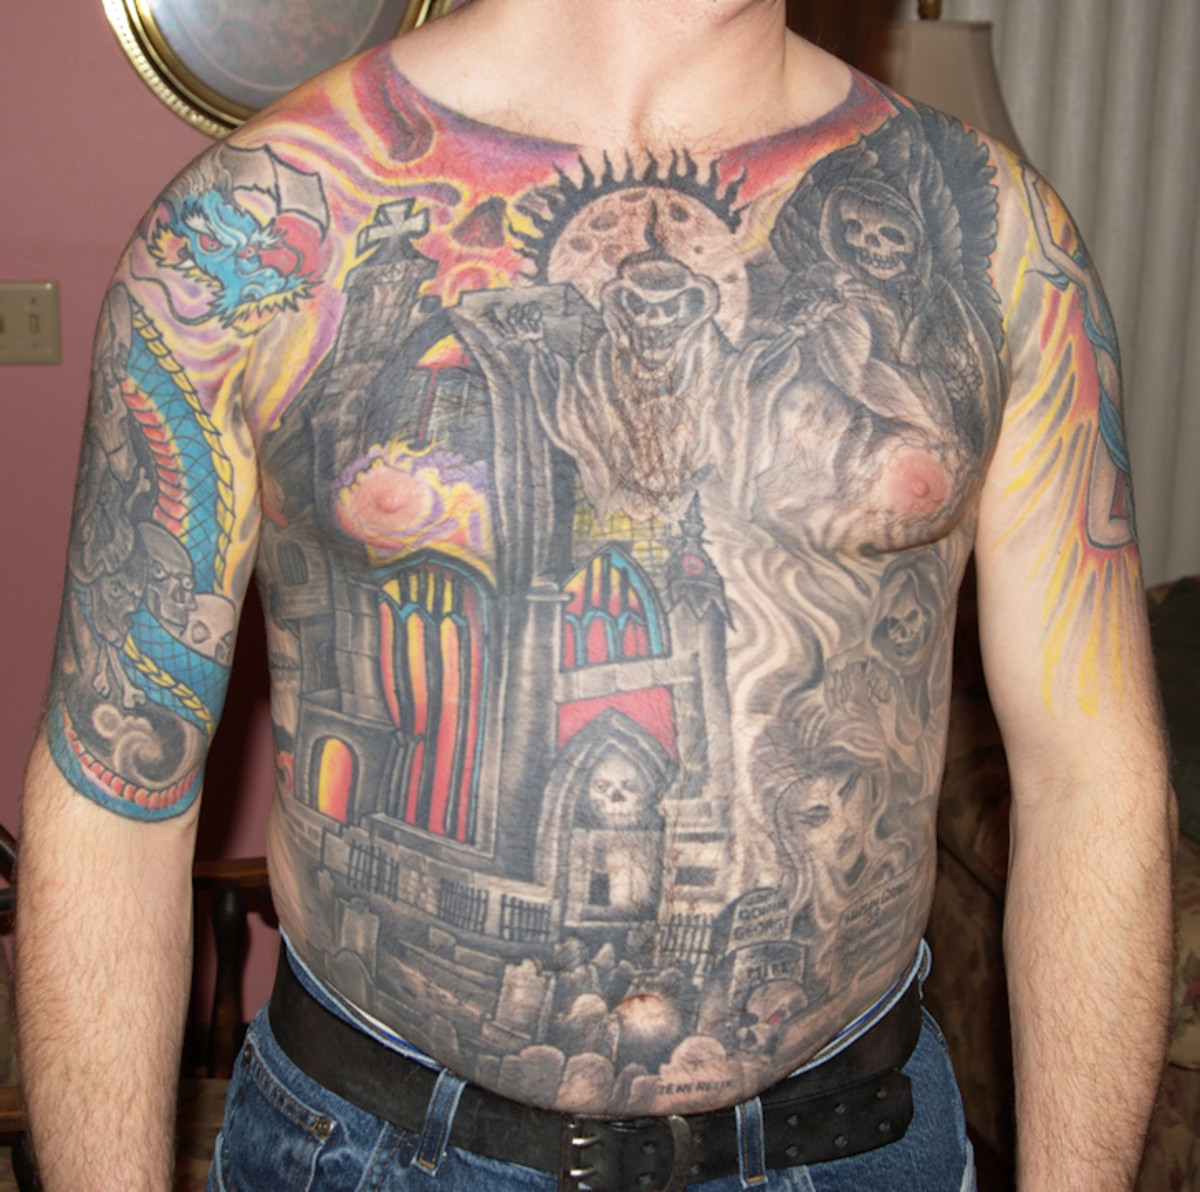 Mikes chest tattoo